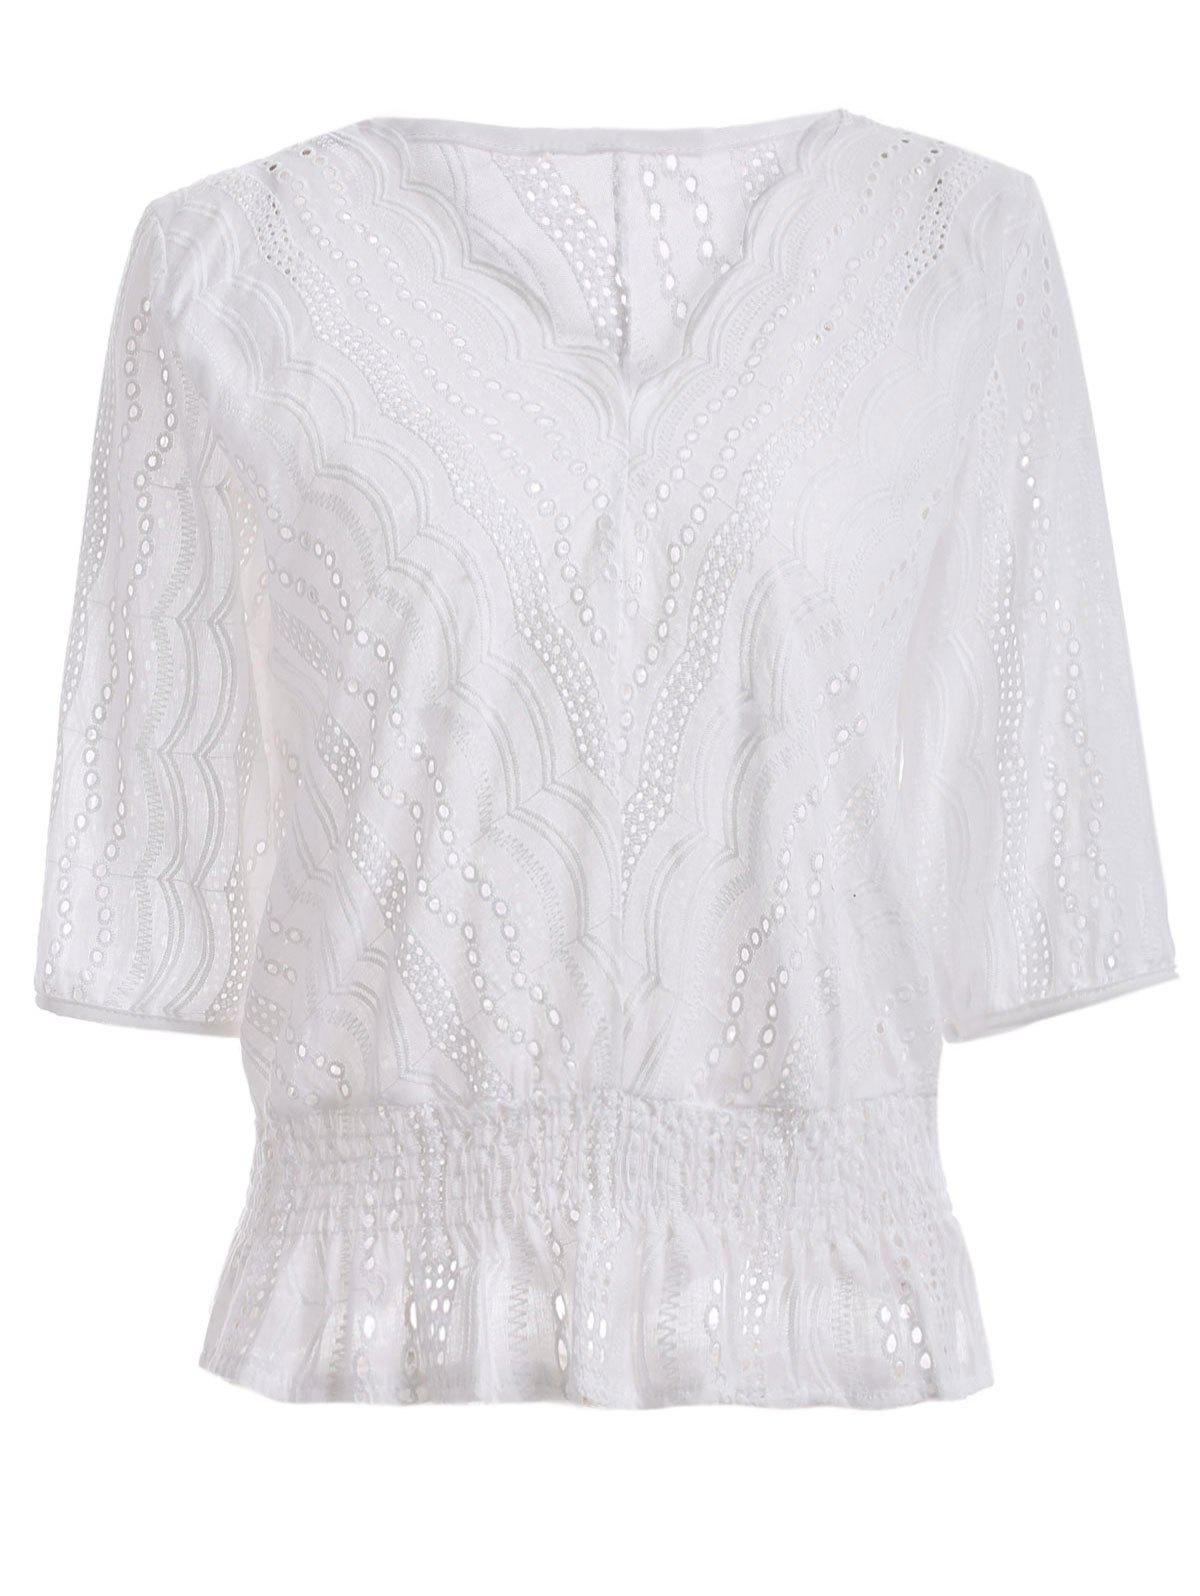 3/4 Sleeve V Neck Bat Sleeve BlouseWomen<br><br><br>Size: ONE SIZE<br>Color: WHITE